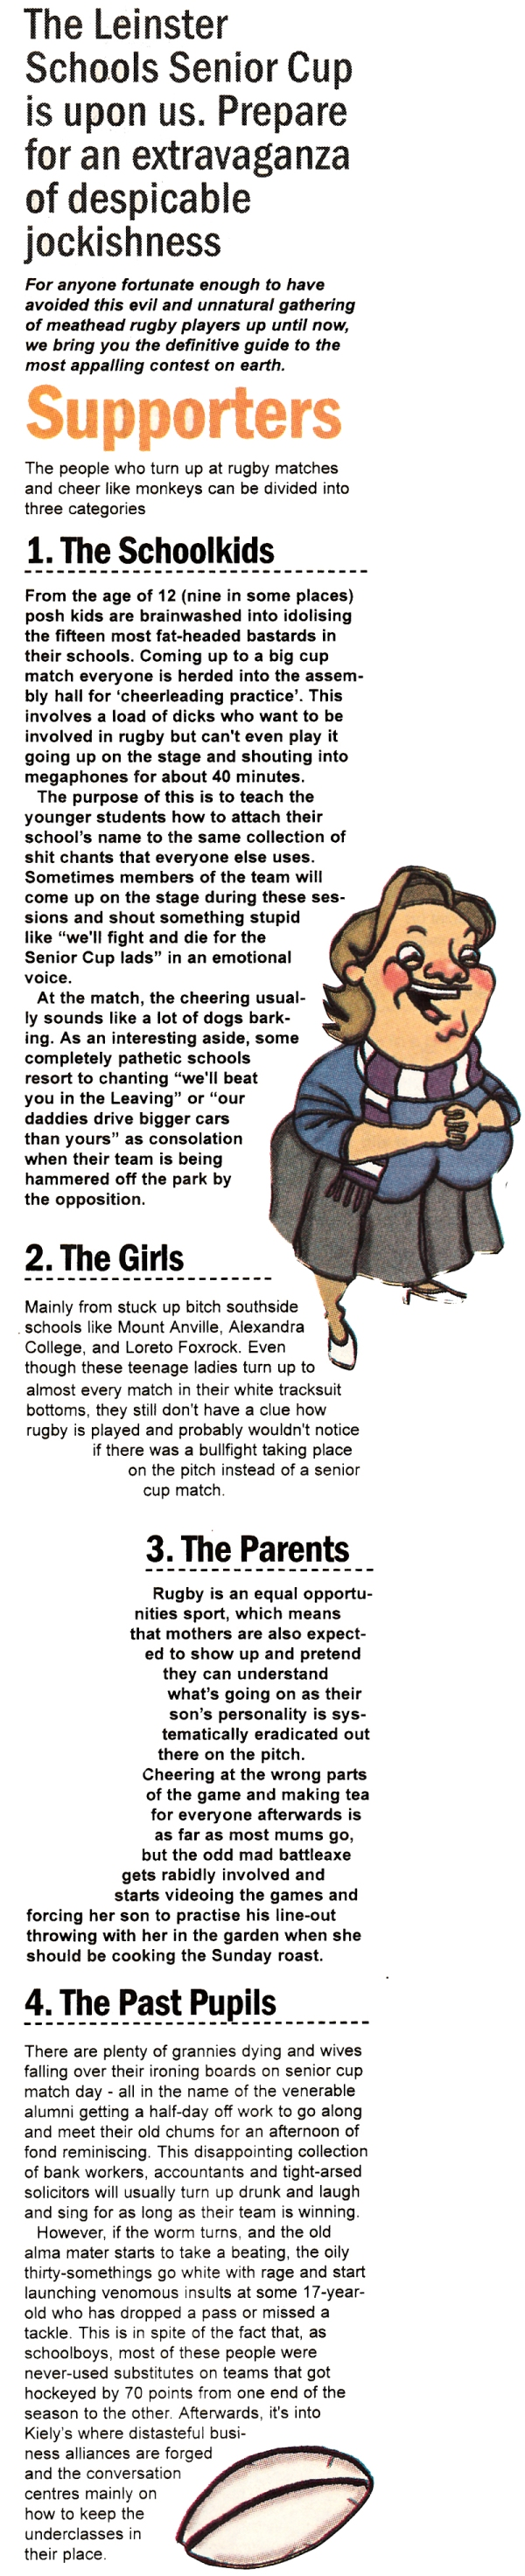 supporters-rugby-schools